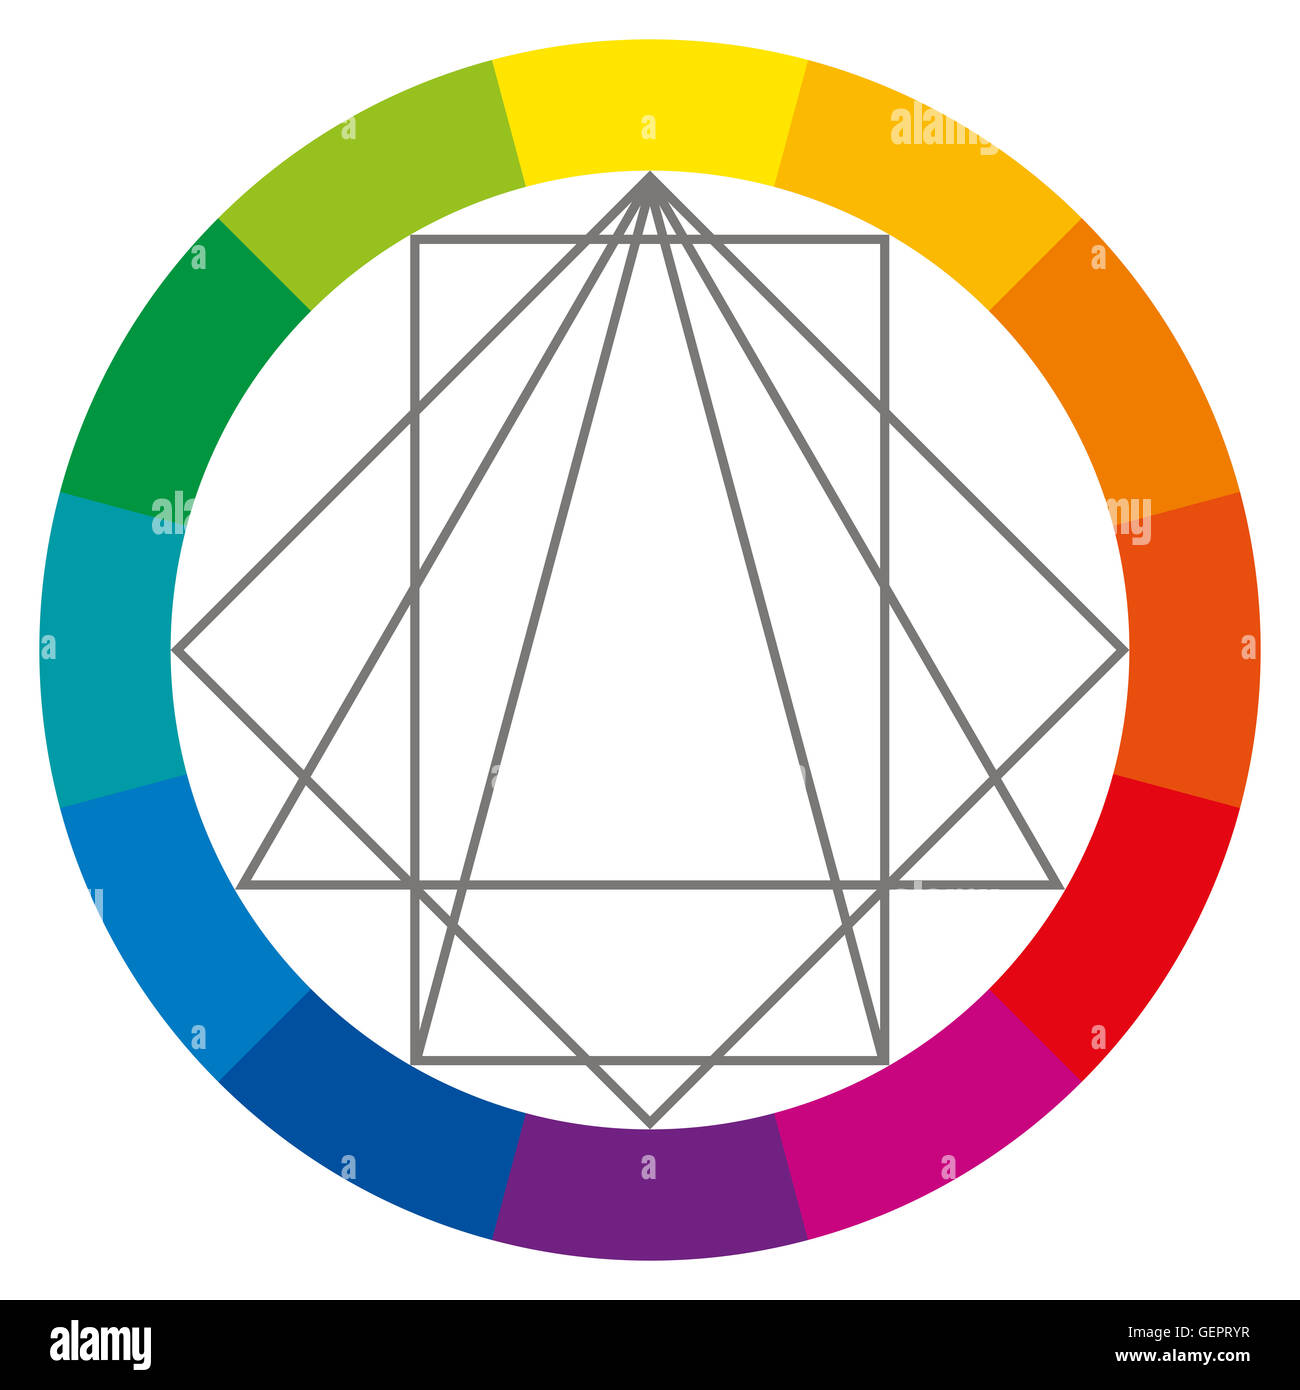 color wheel showing complementary colors that are used in art and